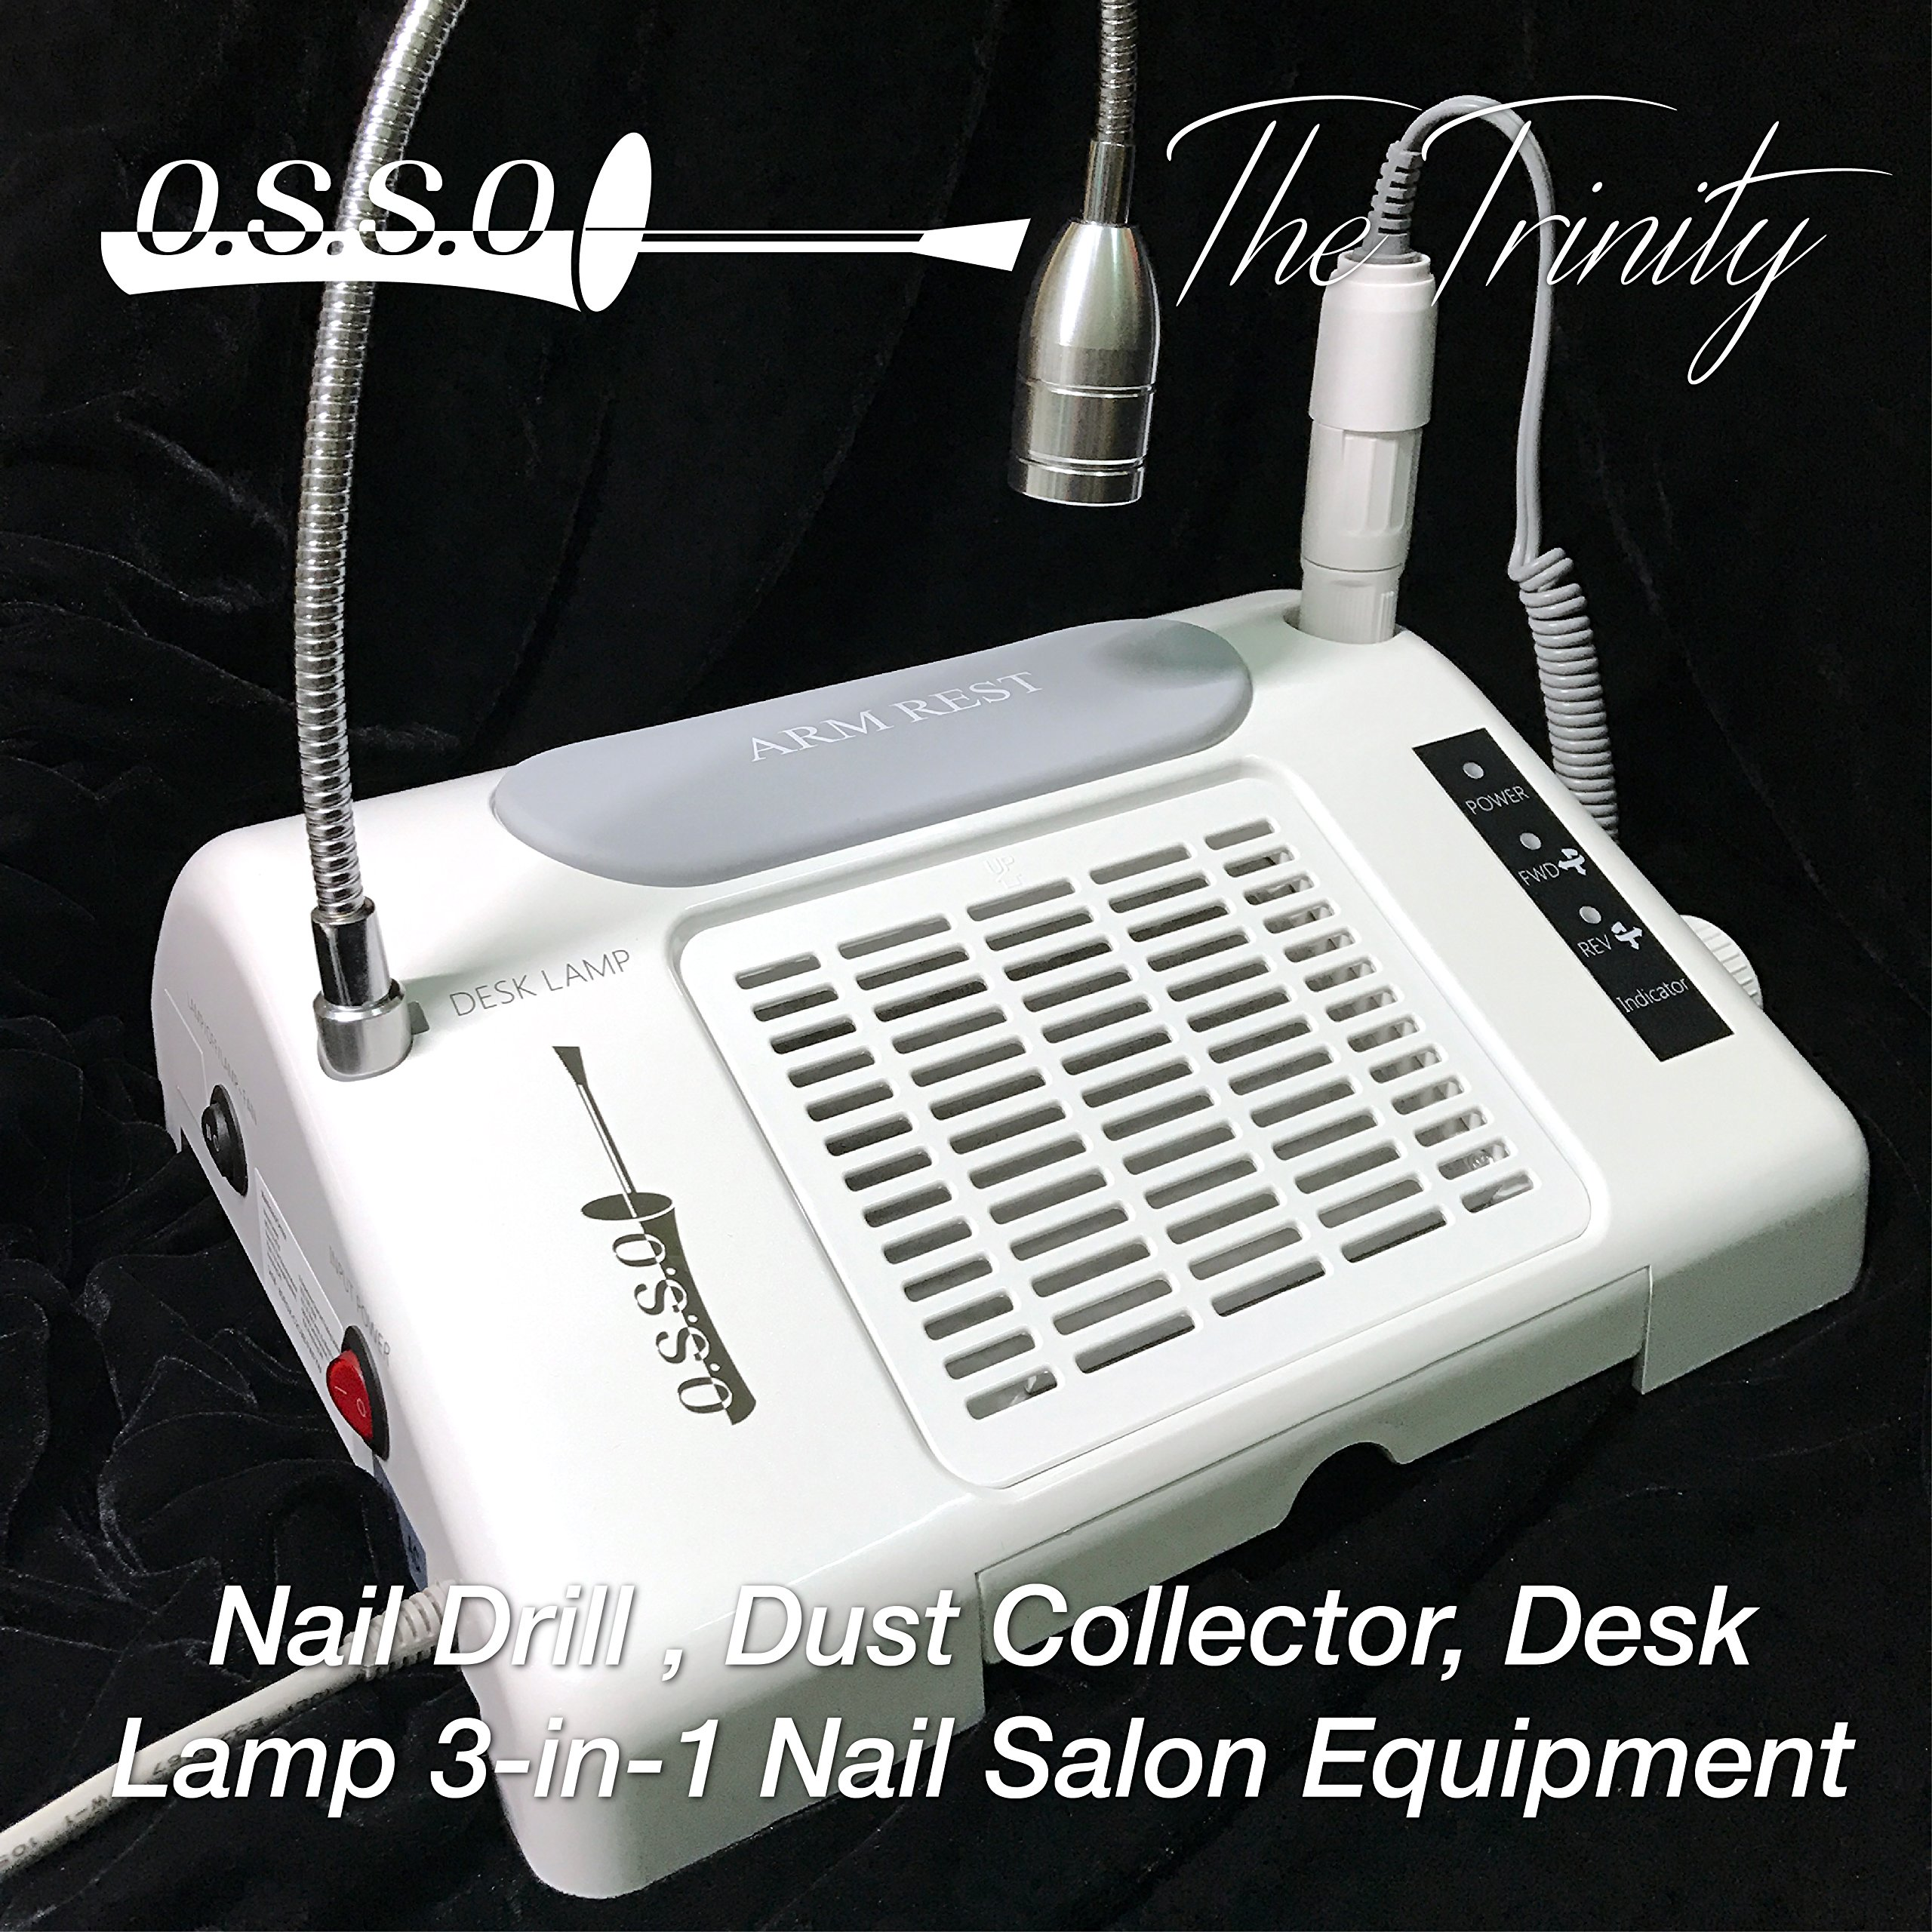 35000 RPM Nail Drill Dust Collector Desk Lamp 3-in-1 machine for salon by O.S.S.O Gel (Image #1)